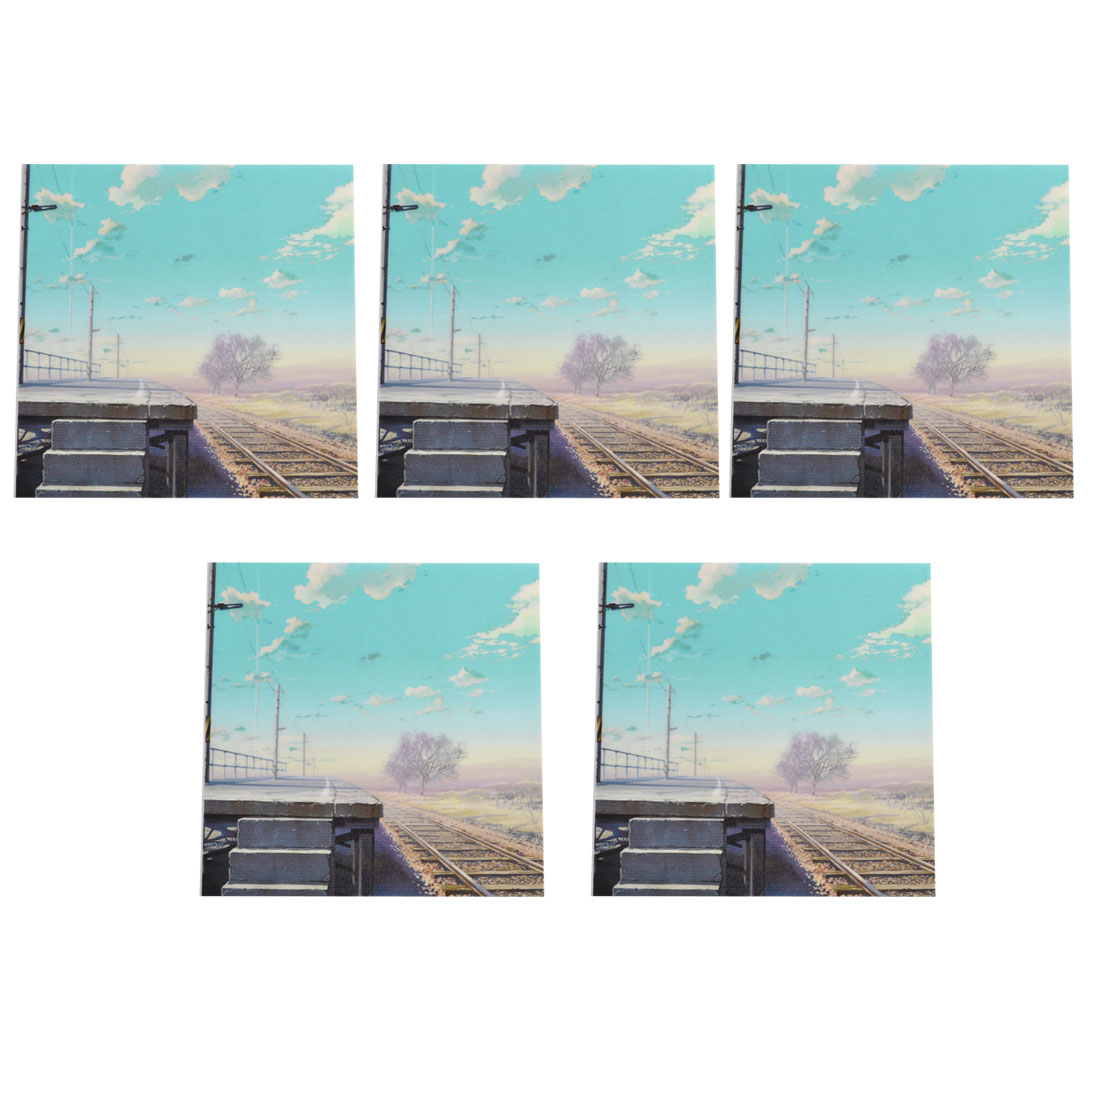 5 Pcs Blue Sky Railway Pattern Light Switch Wall Panel Stickers Decor